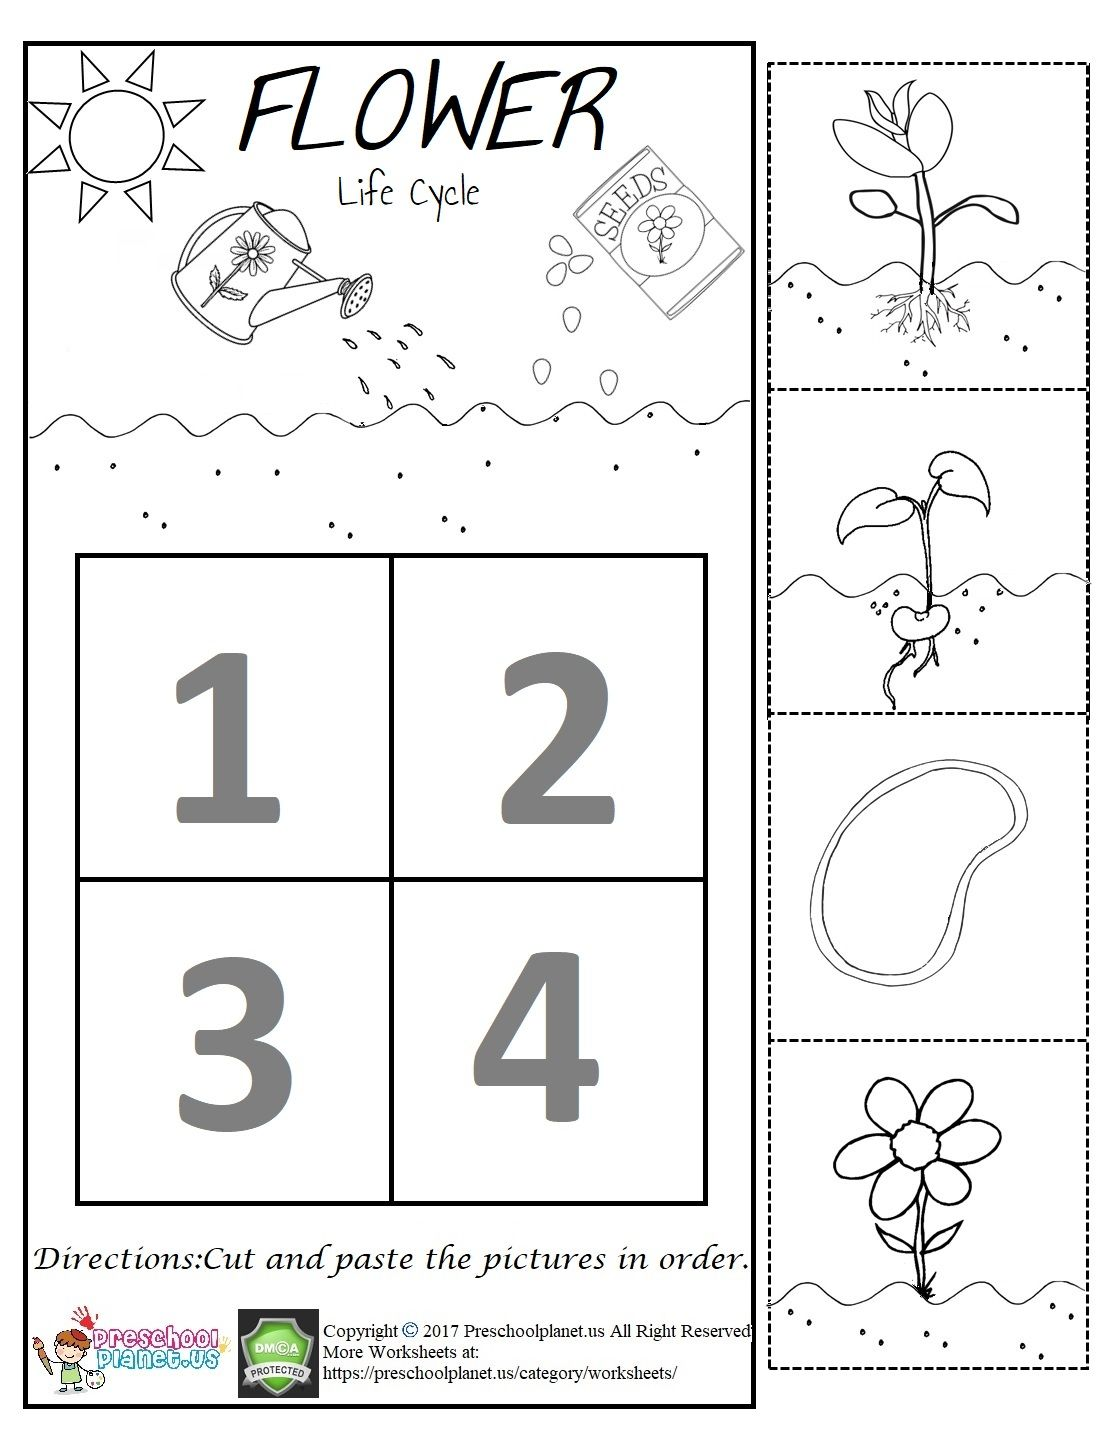 Flower Life Cycle Worksheet Worksheet For Kids Life